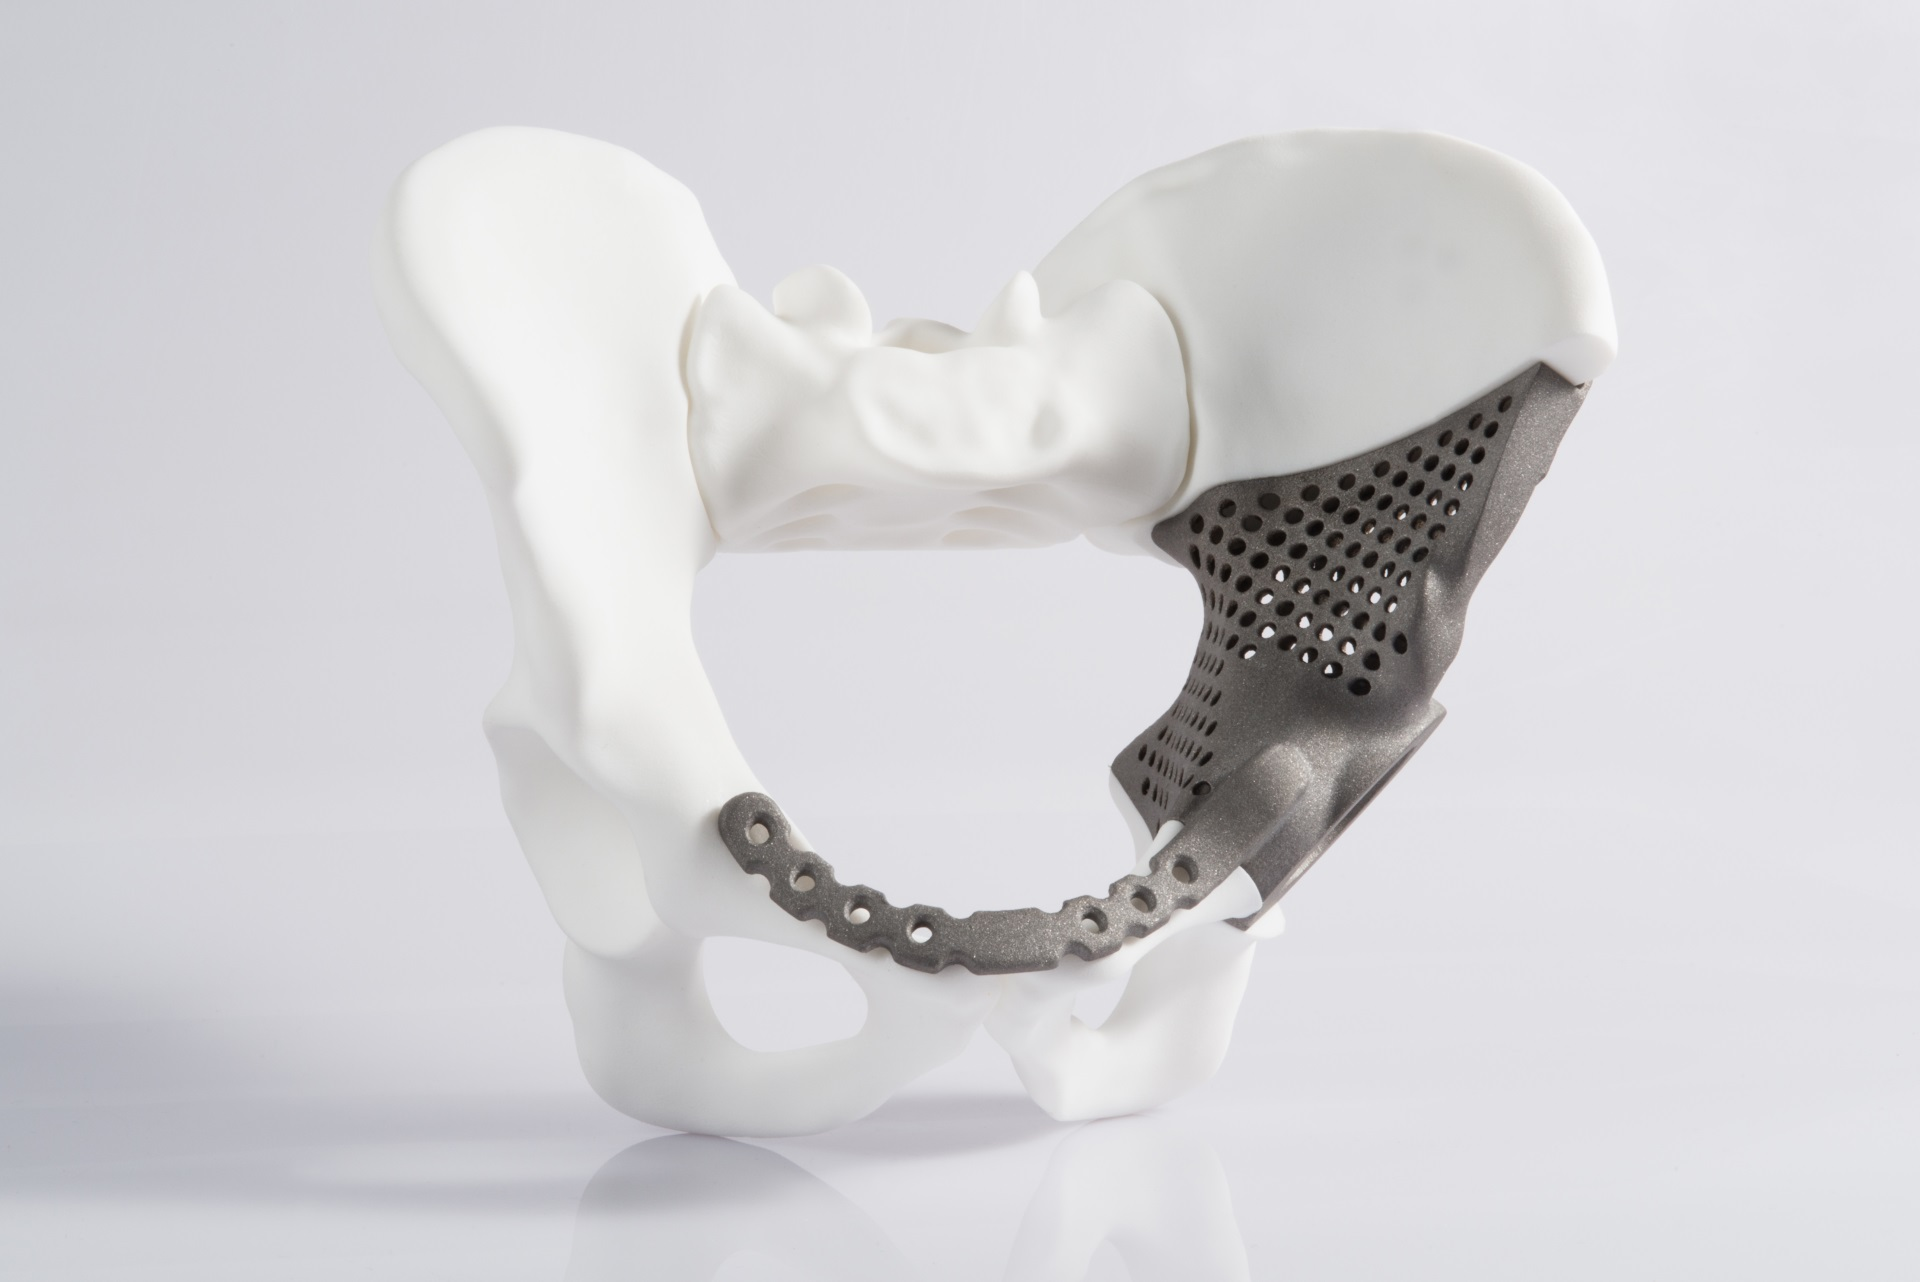 Medical: Help is fast at hand: Alphaform produces hip implant by using Additive Manufacturing